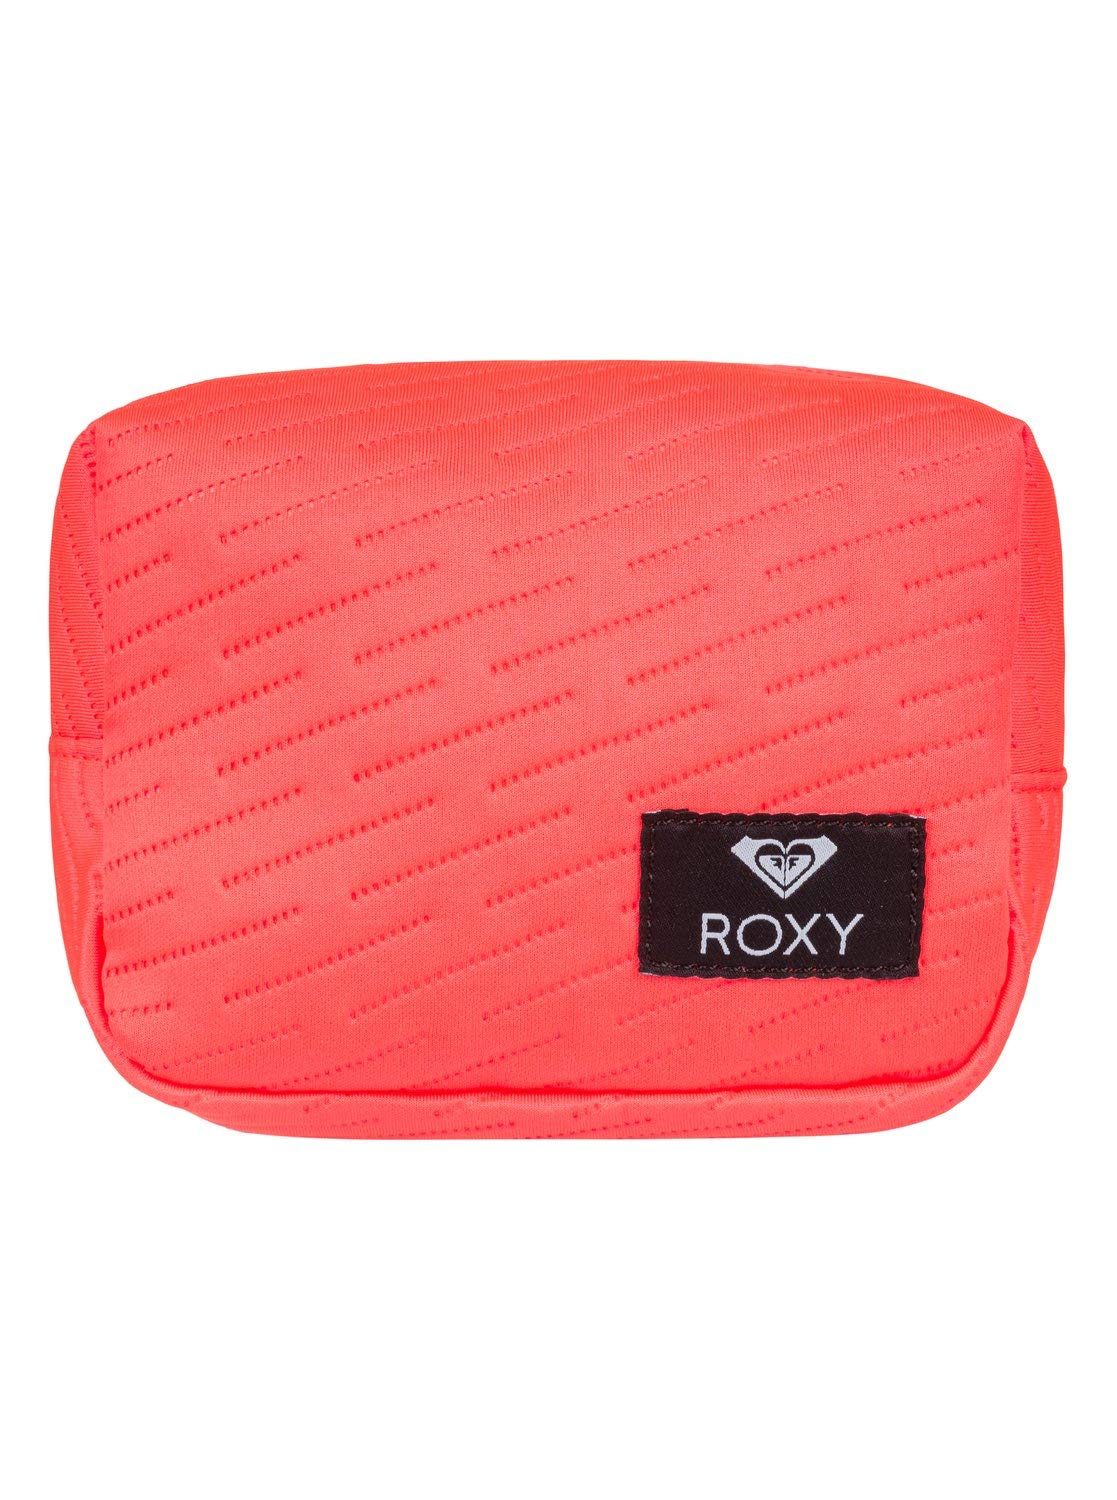 Roxy Grains Of Sand – Estuche de Neopreno para Lápices ERJAA03544